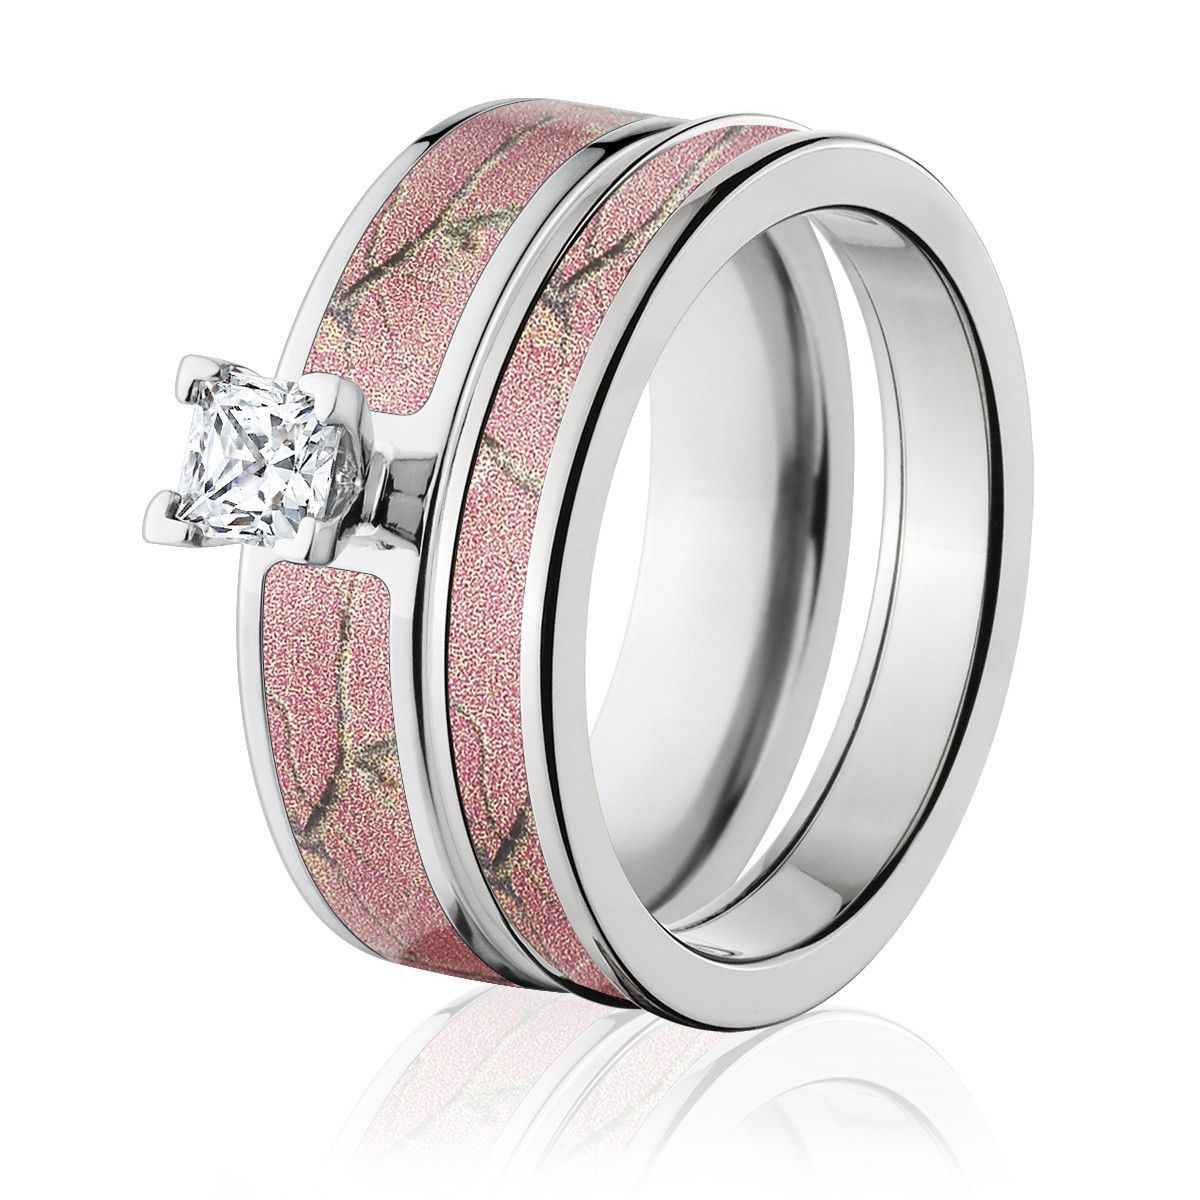 Realtree Ap Pink Camo Wedding Ring Set With Images Camo Engagement Rings Pink Camo Rings Camo Wedding Rings